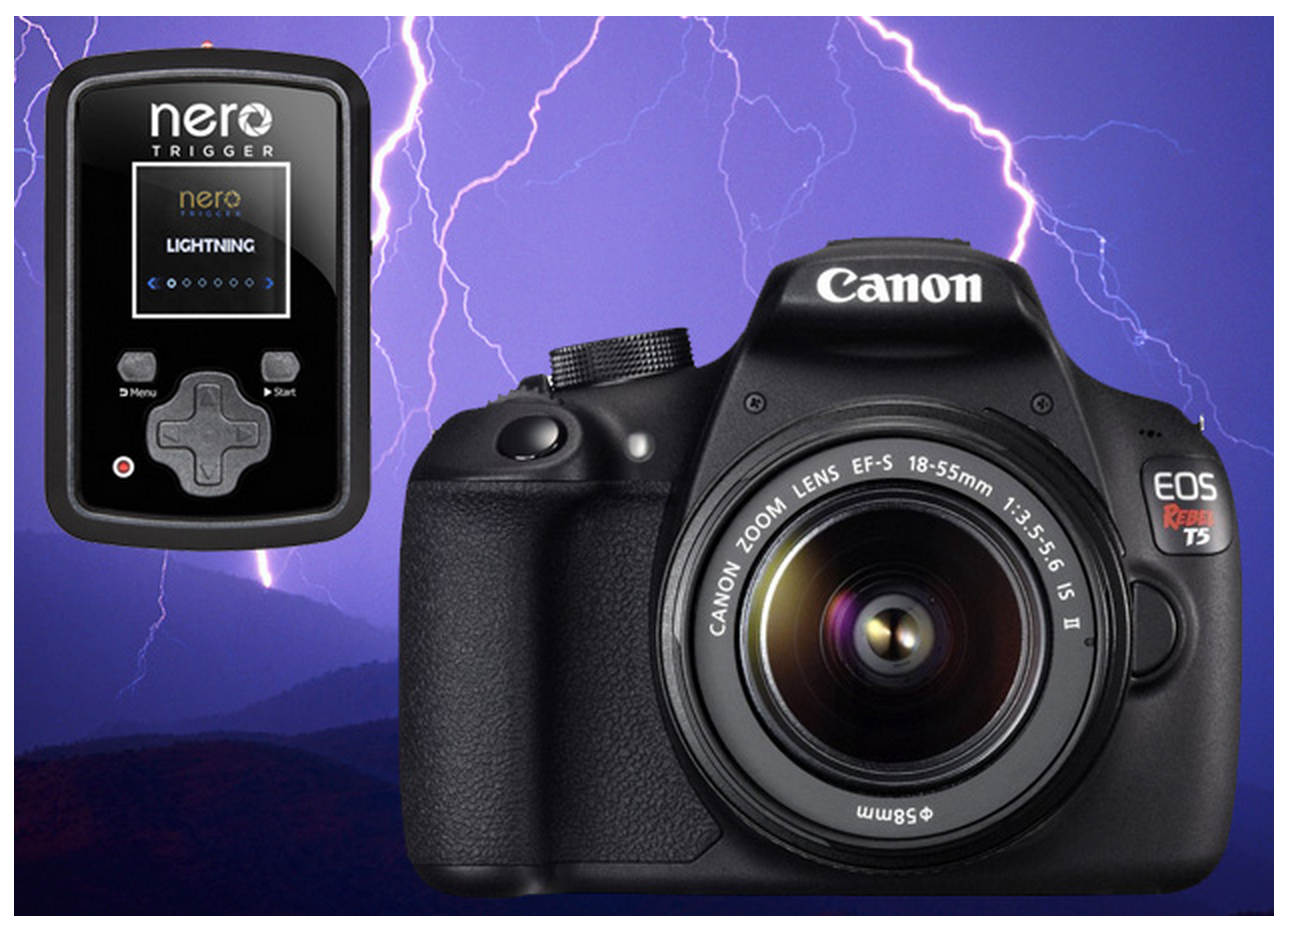 Freebie -Giveaway Open to Canada and USA Enter to win a Photography tool - Nero TRigger